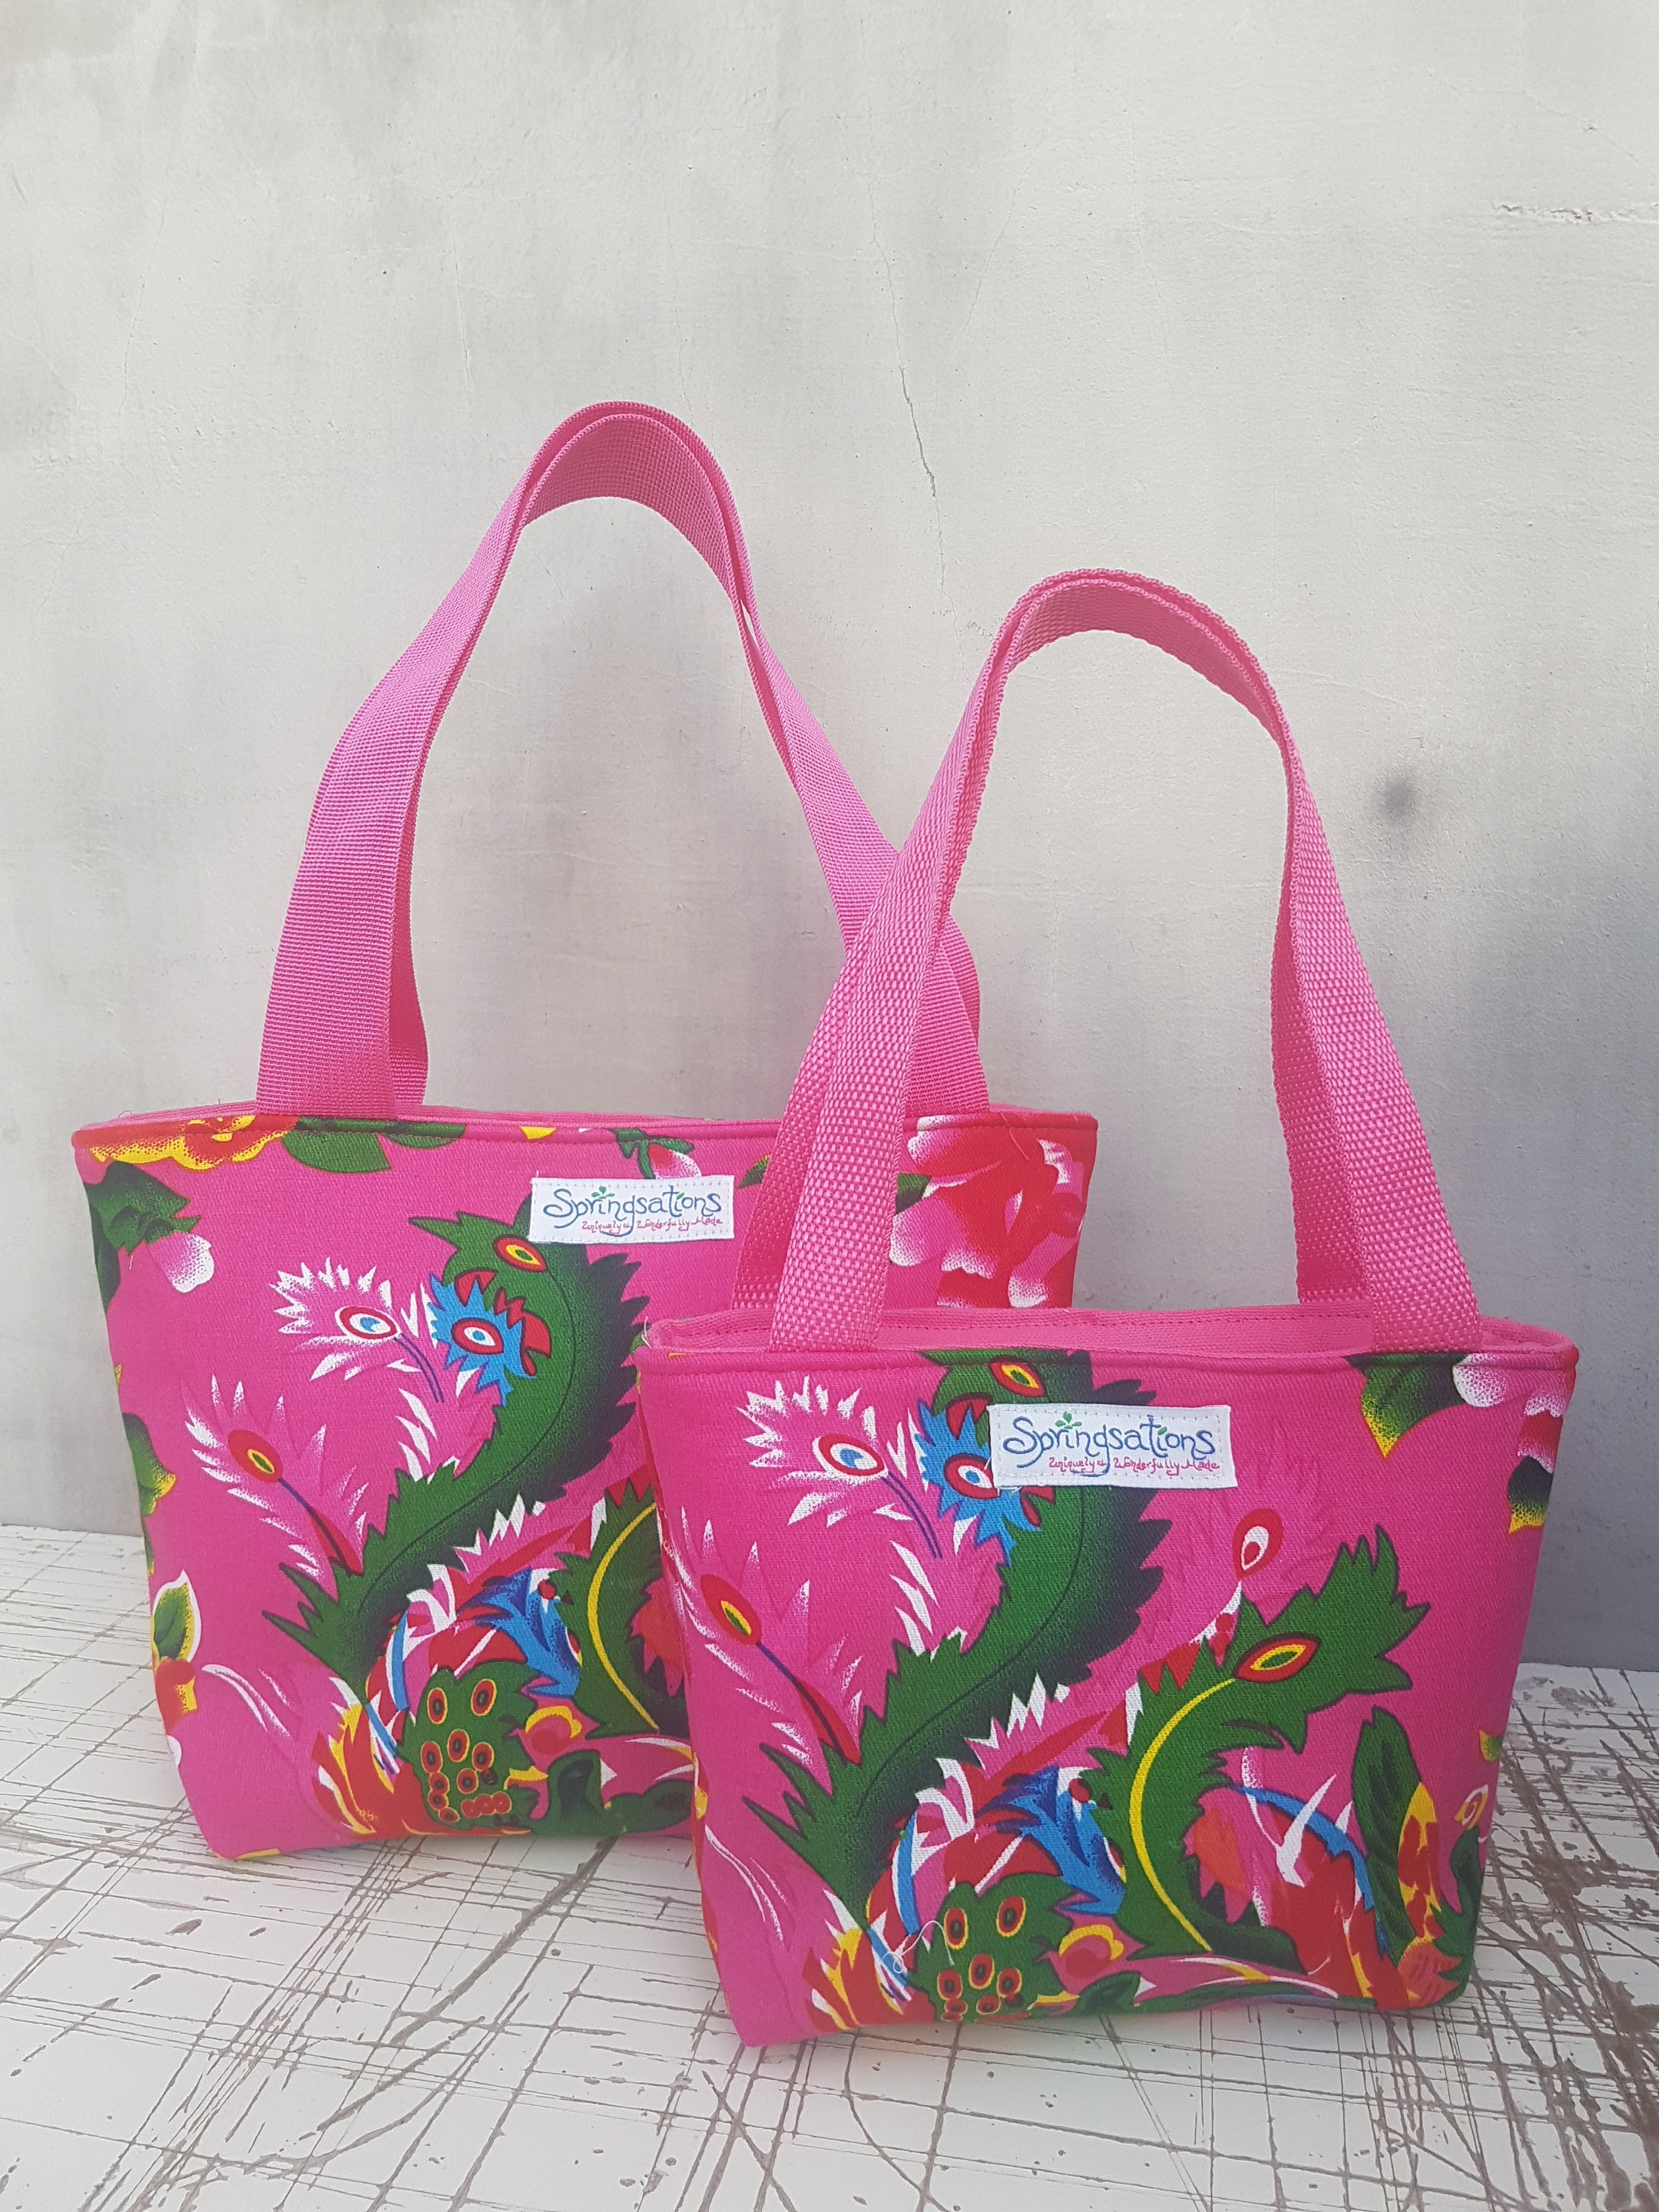 Medium & Little Travel Bag in Fuchsia